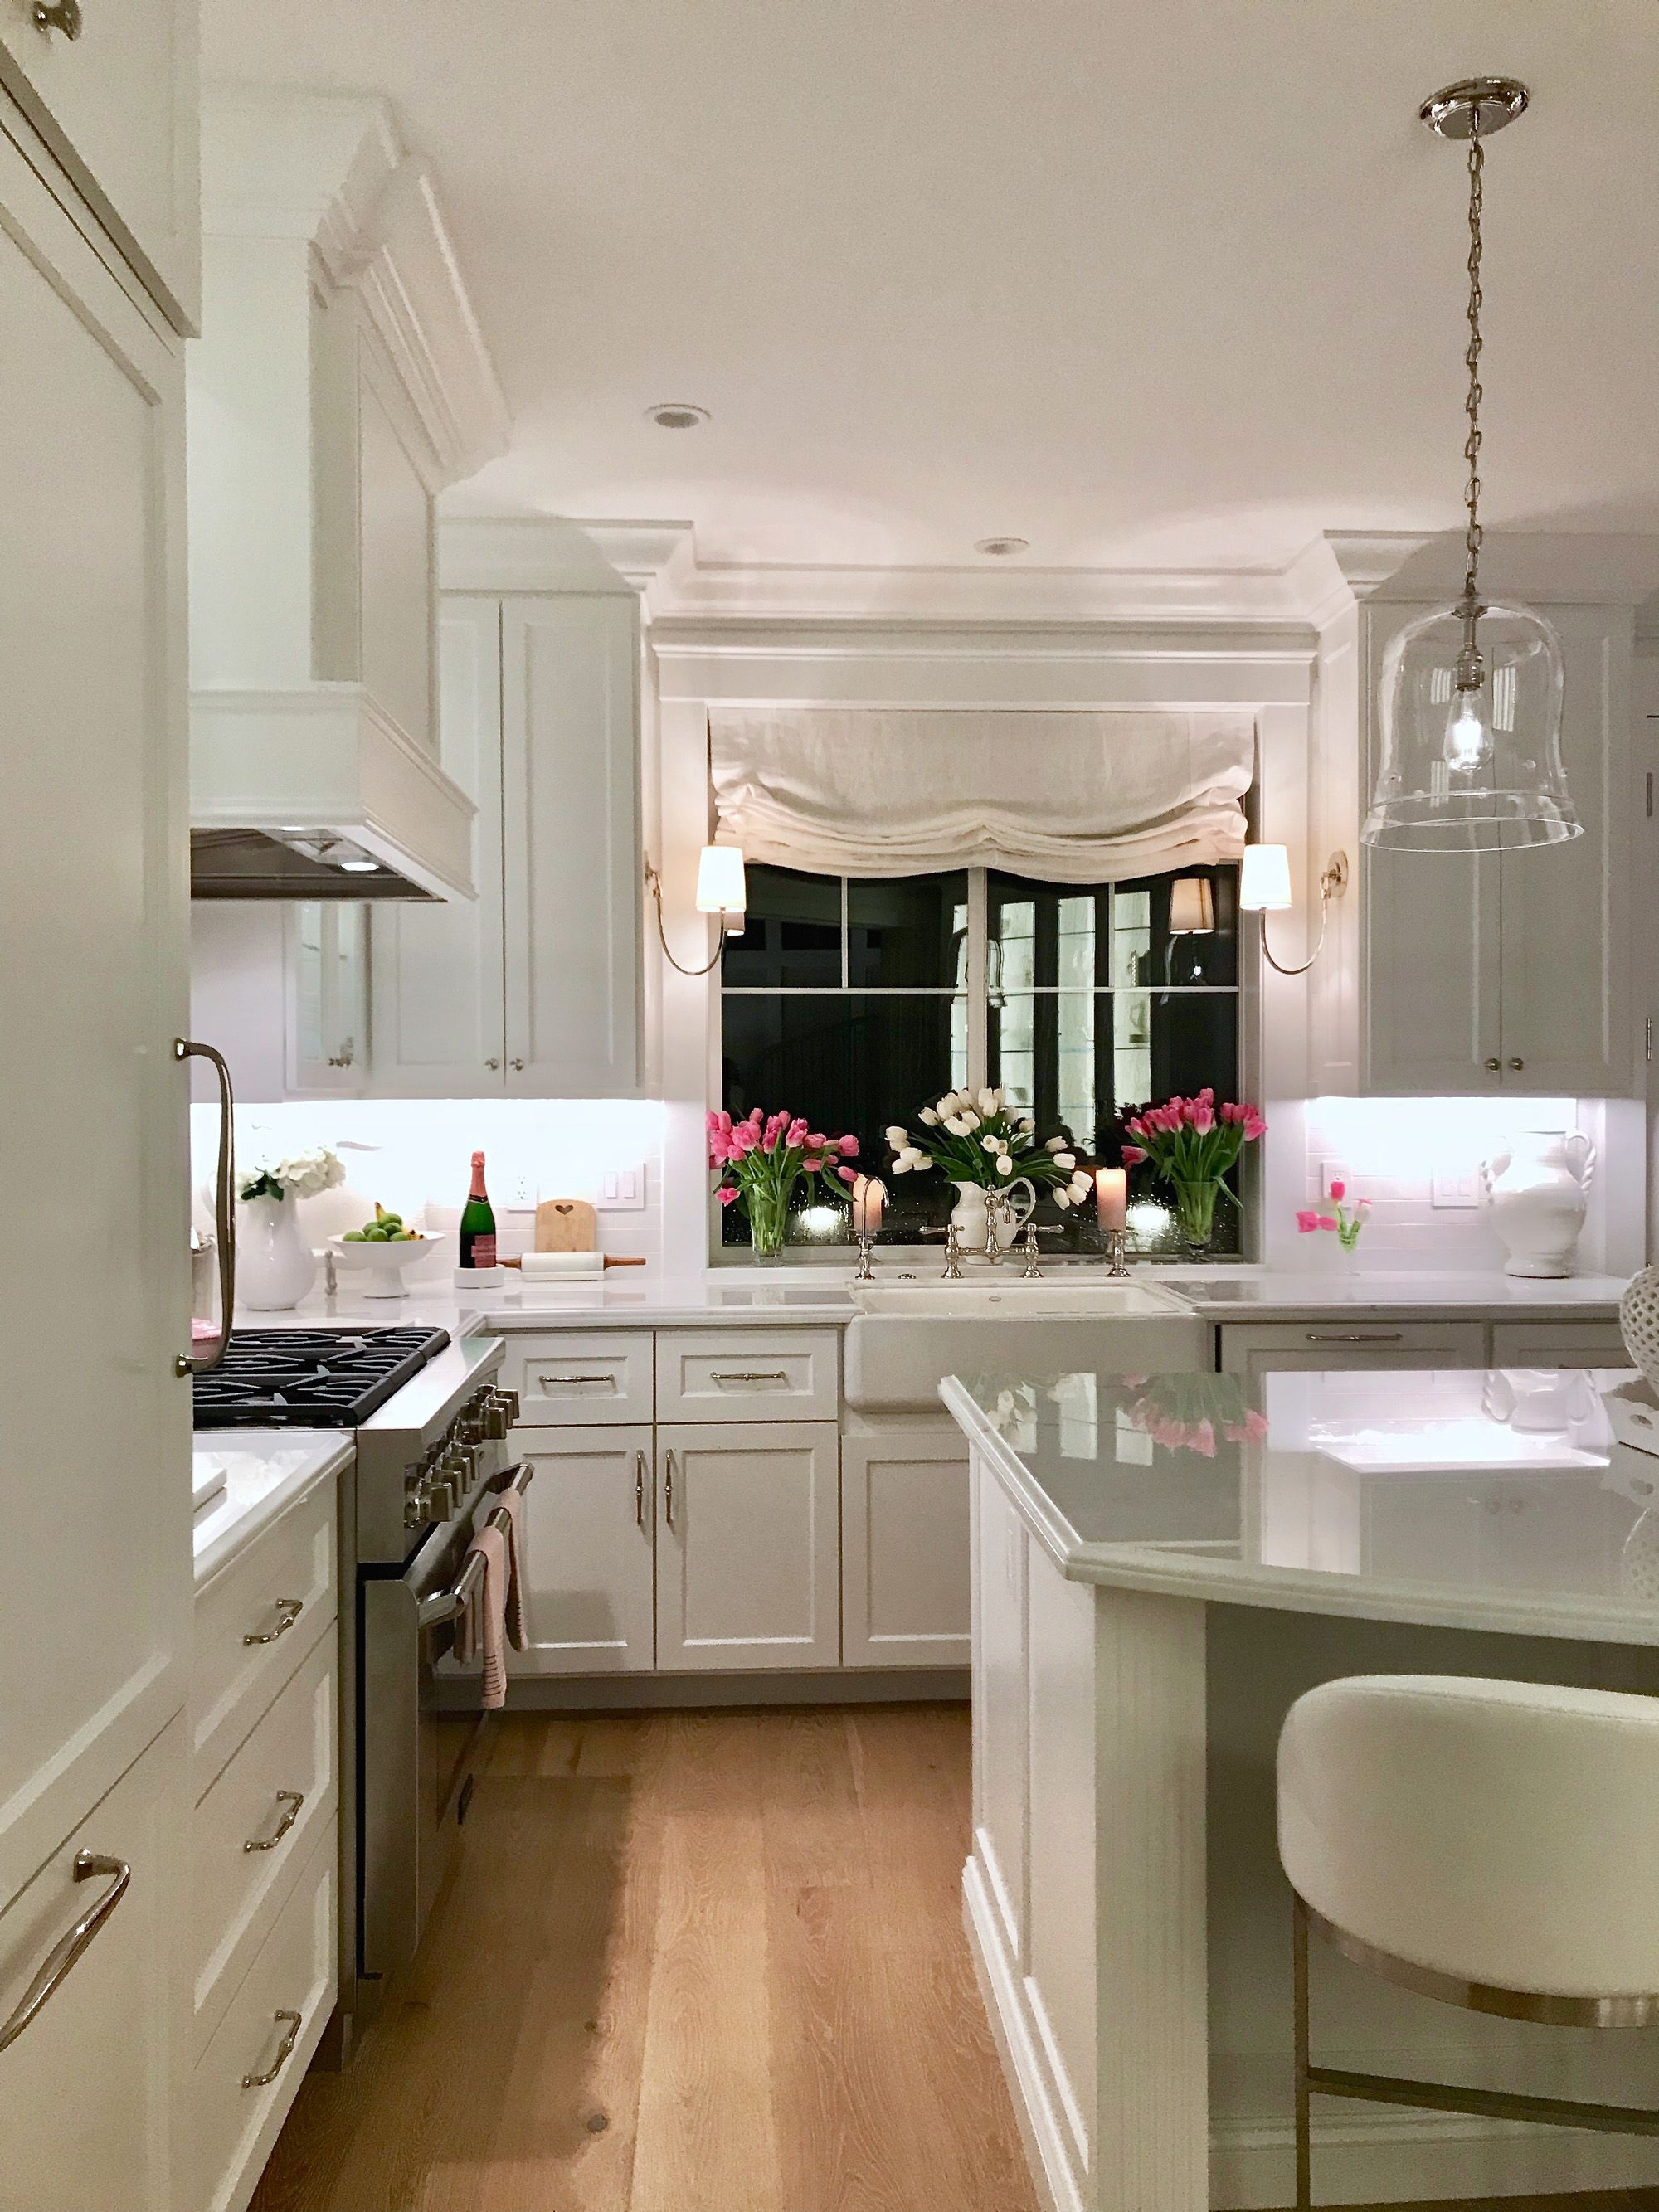 Kitchen Q+A with Sources, Details, and Links - Plu